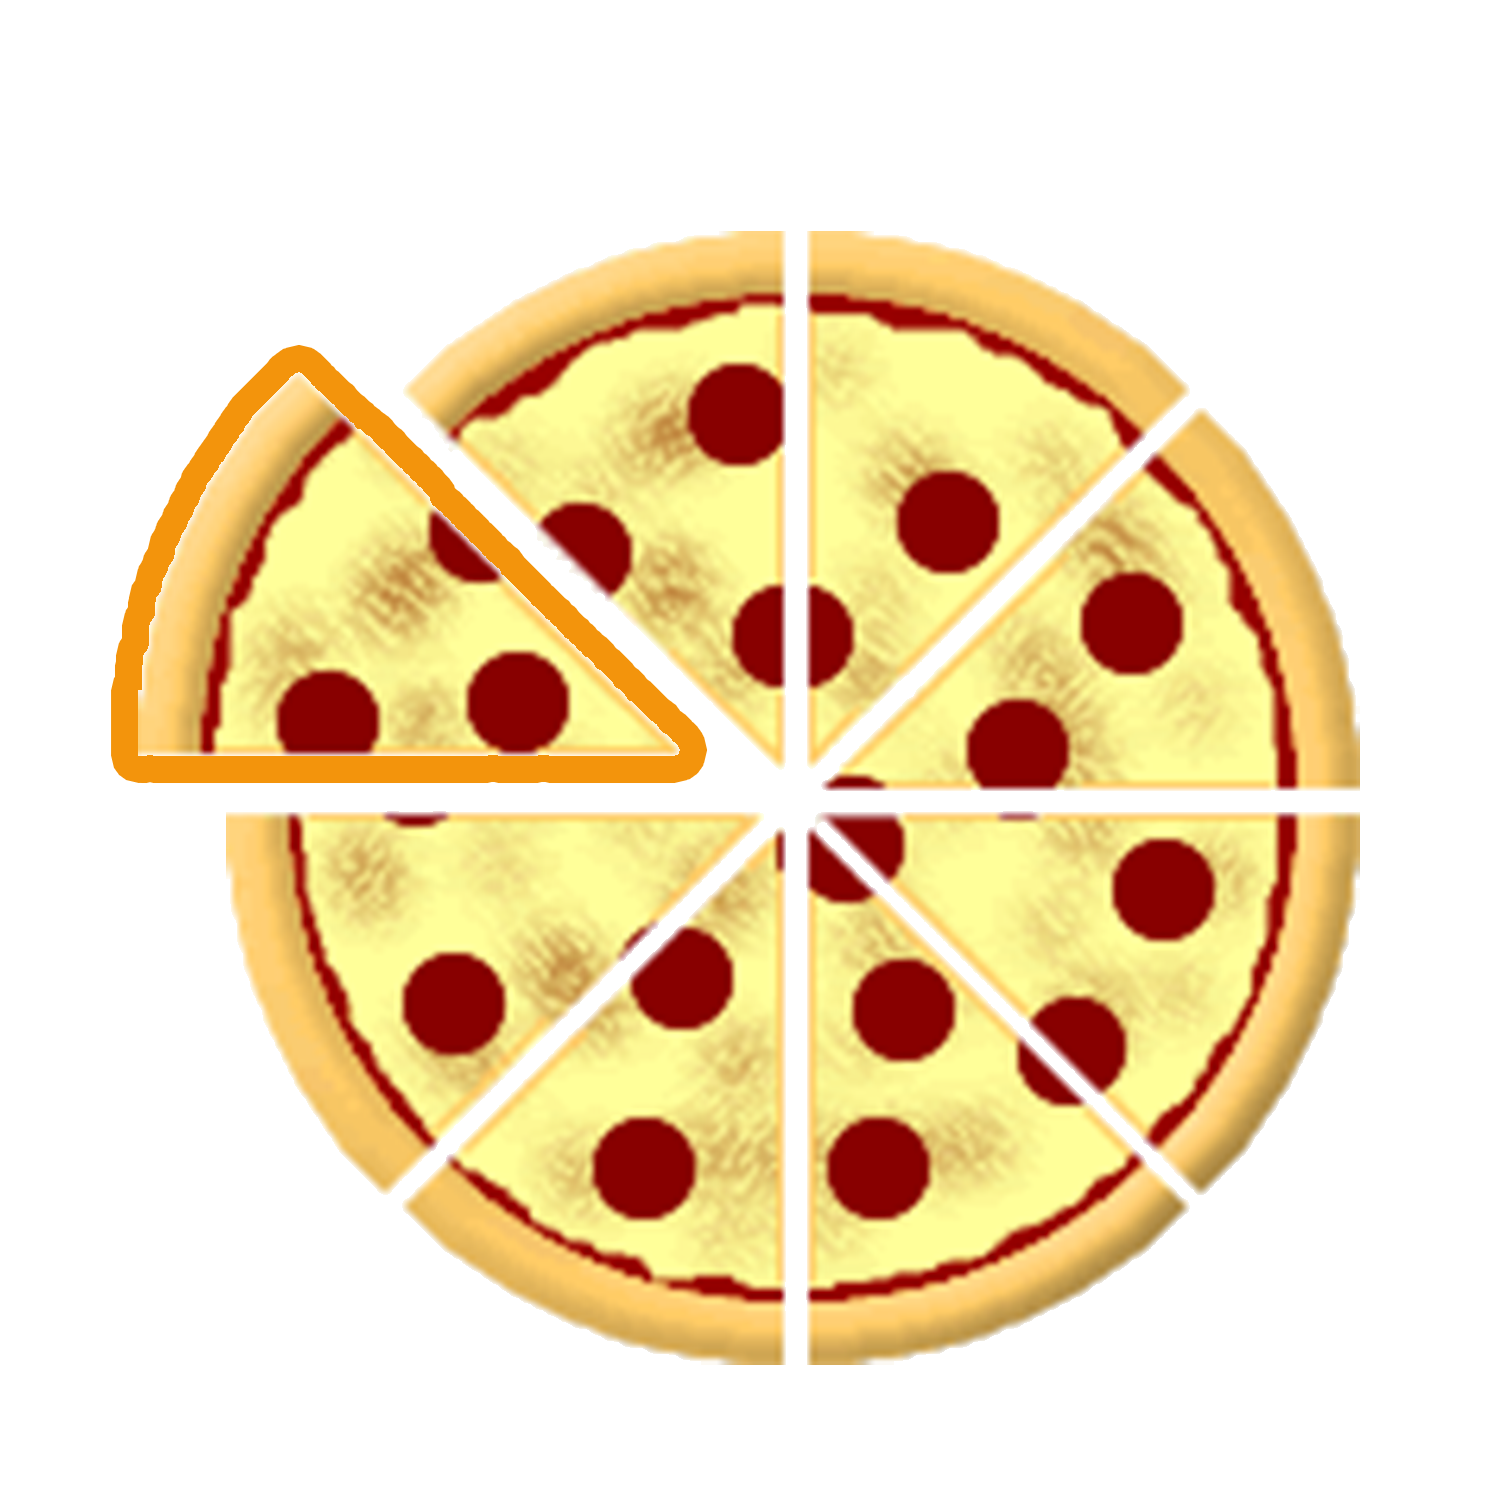 Pizza fractions clipart banner library download Pizza fractions clipart clipart images gallery for free ... banner library download